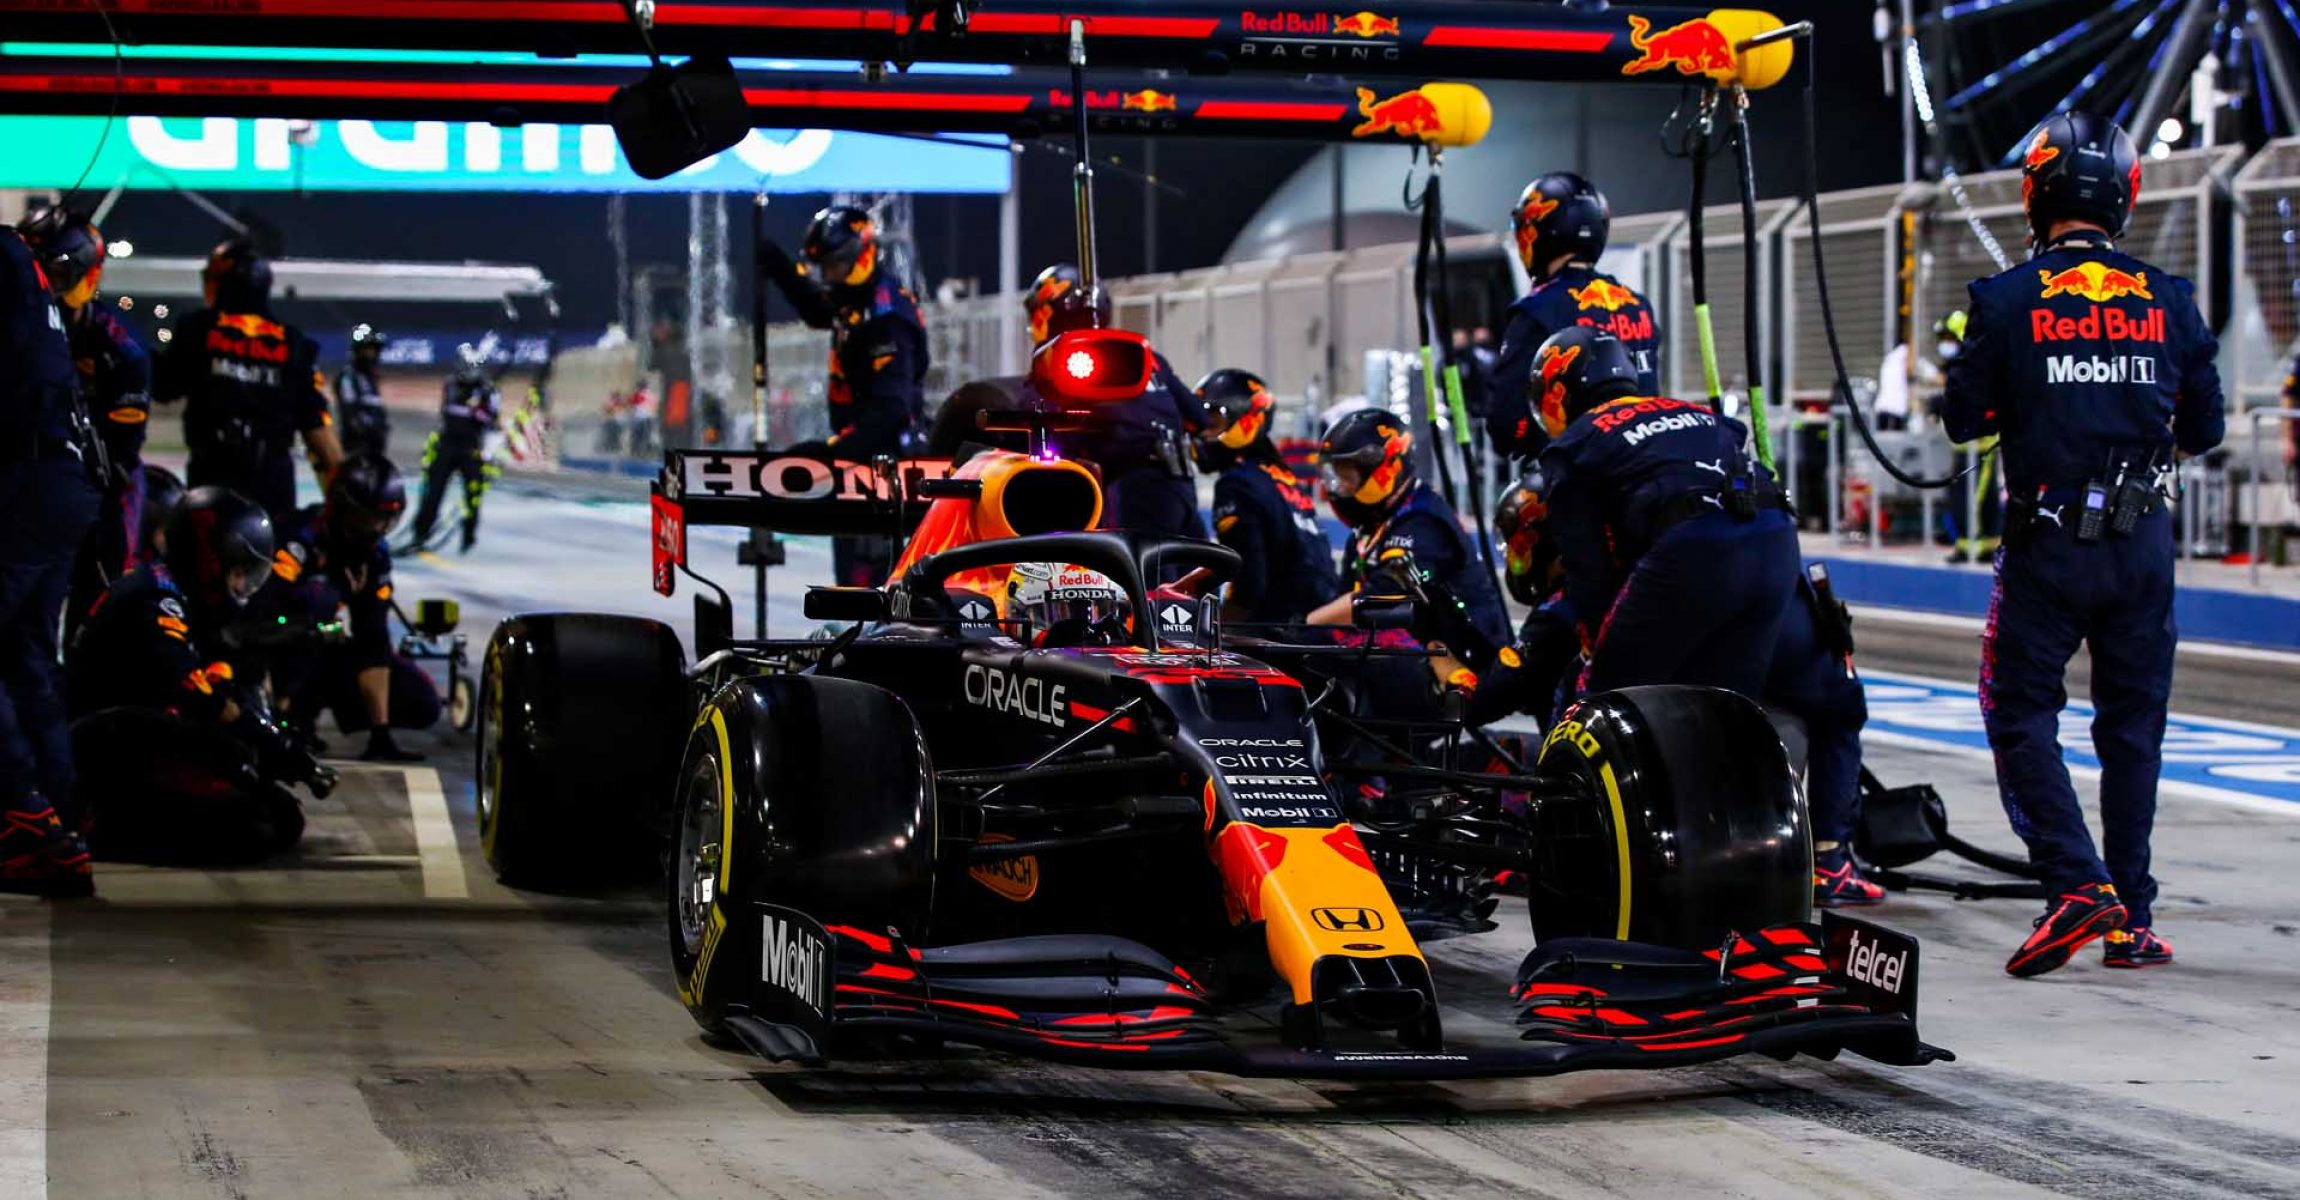 BAHRAIN, BAHRAIN - MARCH 28: Max Verstappen of the Netherlands driving the (33) Red Bull Racing RB16B Honda makes a pitstop during the F1 Grand Prix of Bahrain at Bahrain International Circuit on March 28, 2021 in Bahrain, Bahrain. (Photo by Mark Thompson/Getty Images)